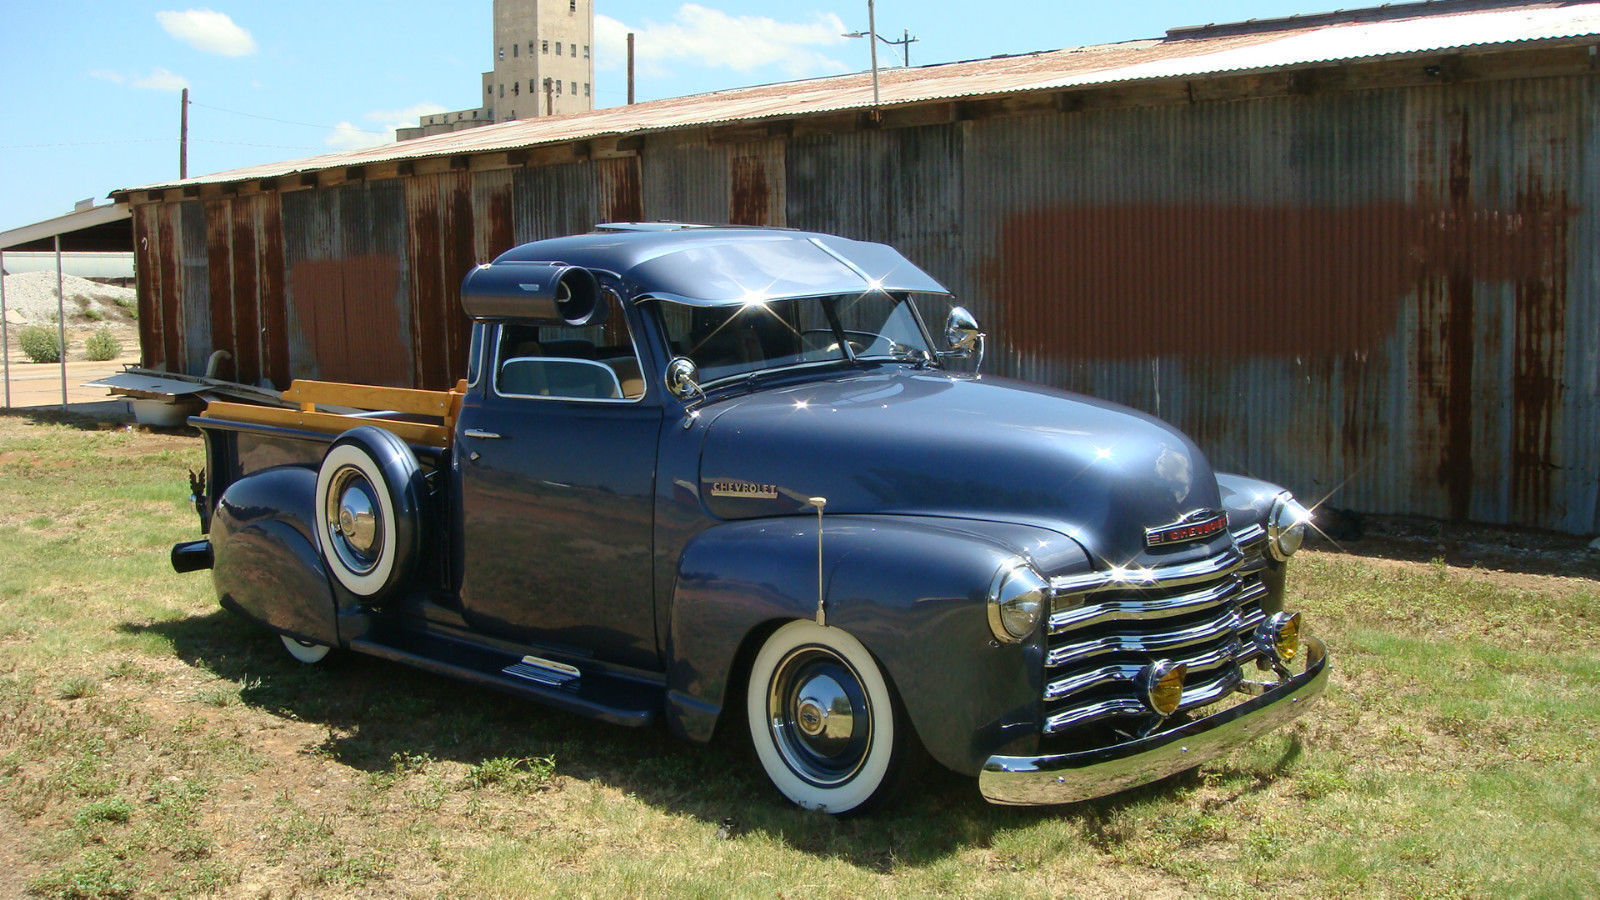 1948 chevrolet pickup 3100 a true custom classic hot rod rat rod classic chevrolet other. Black Bedroom Furniture Sets. Home Design Ideas